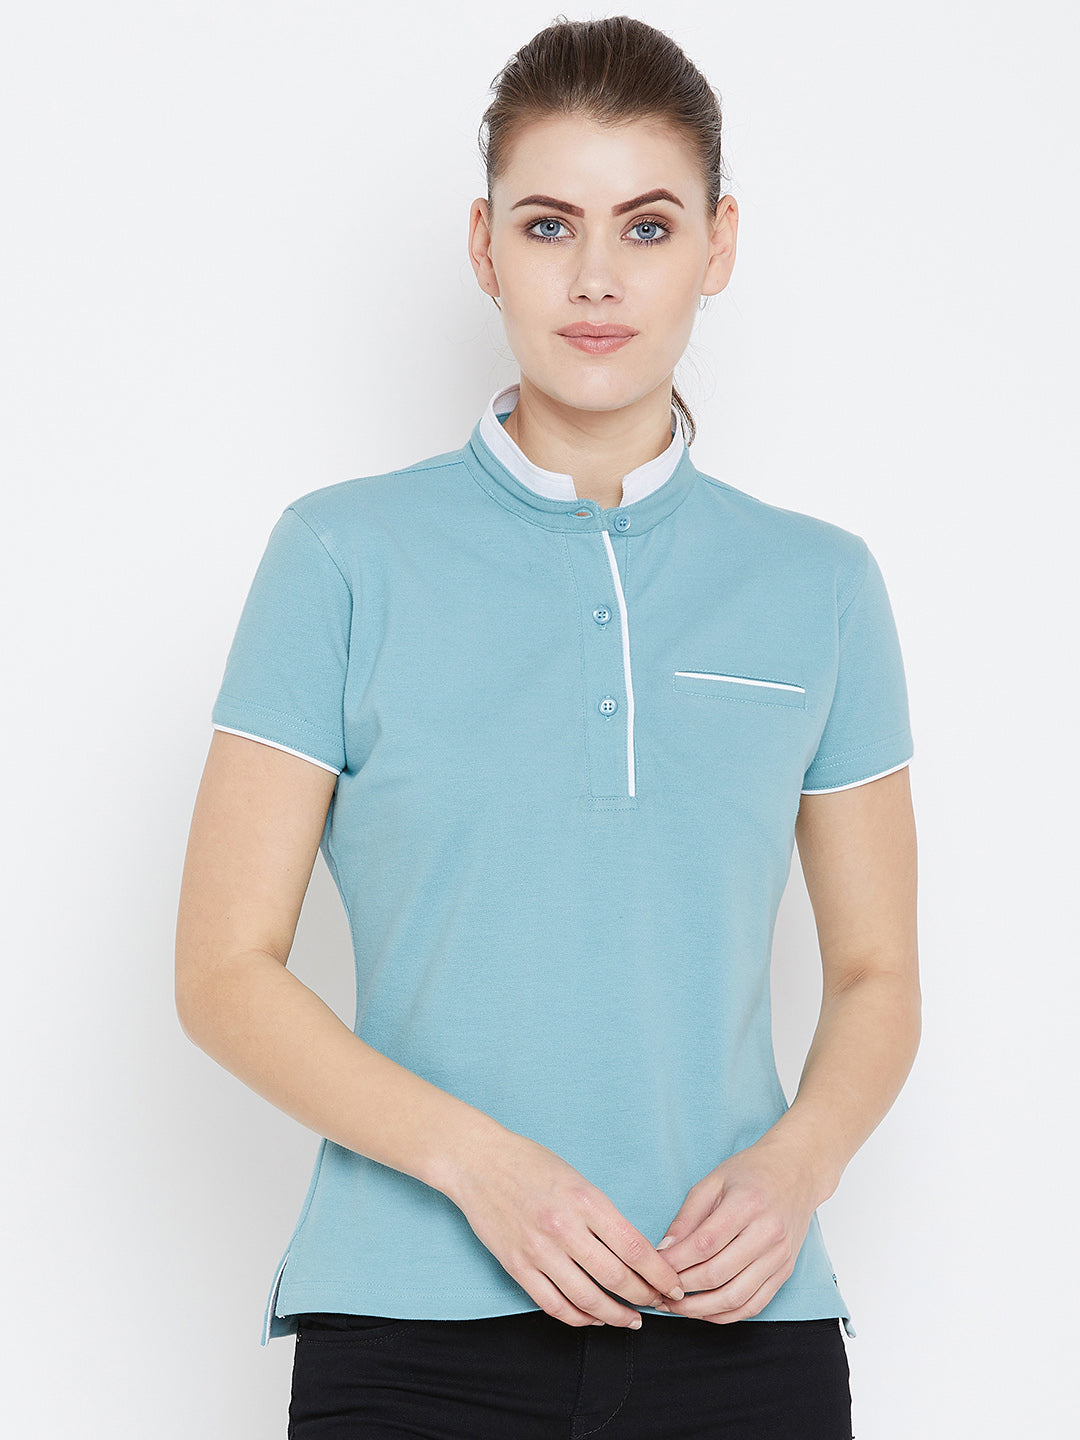 Women Blue Solid Casual Polo T-shirts